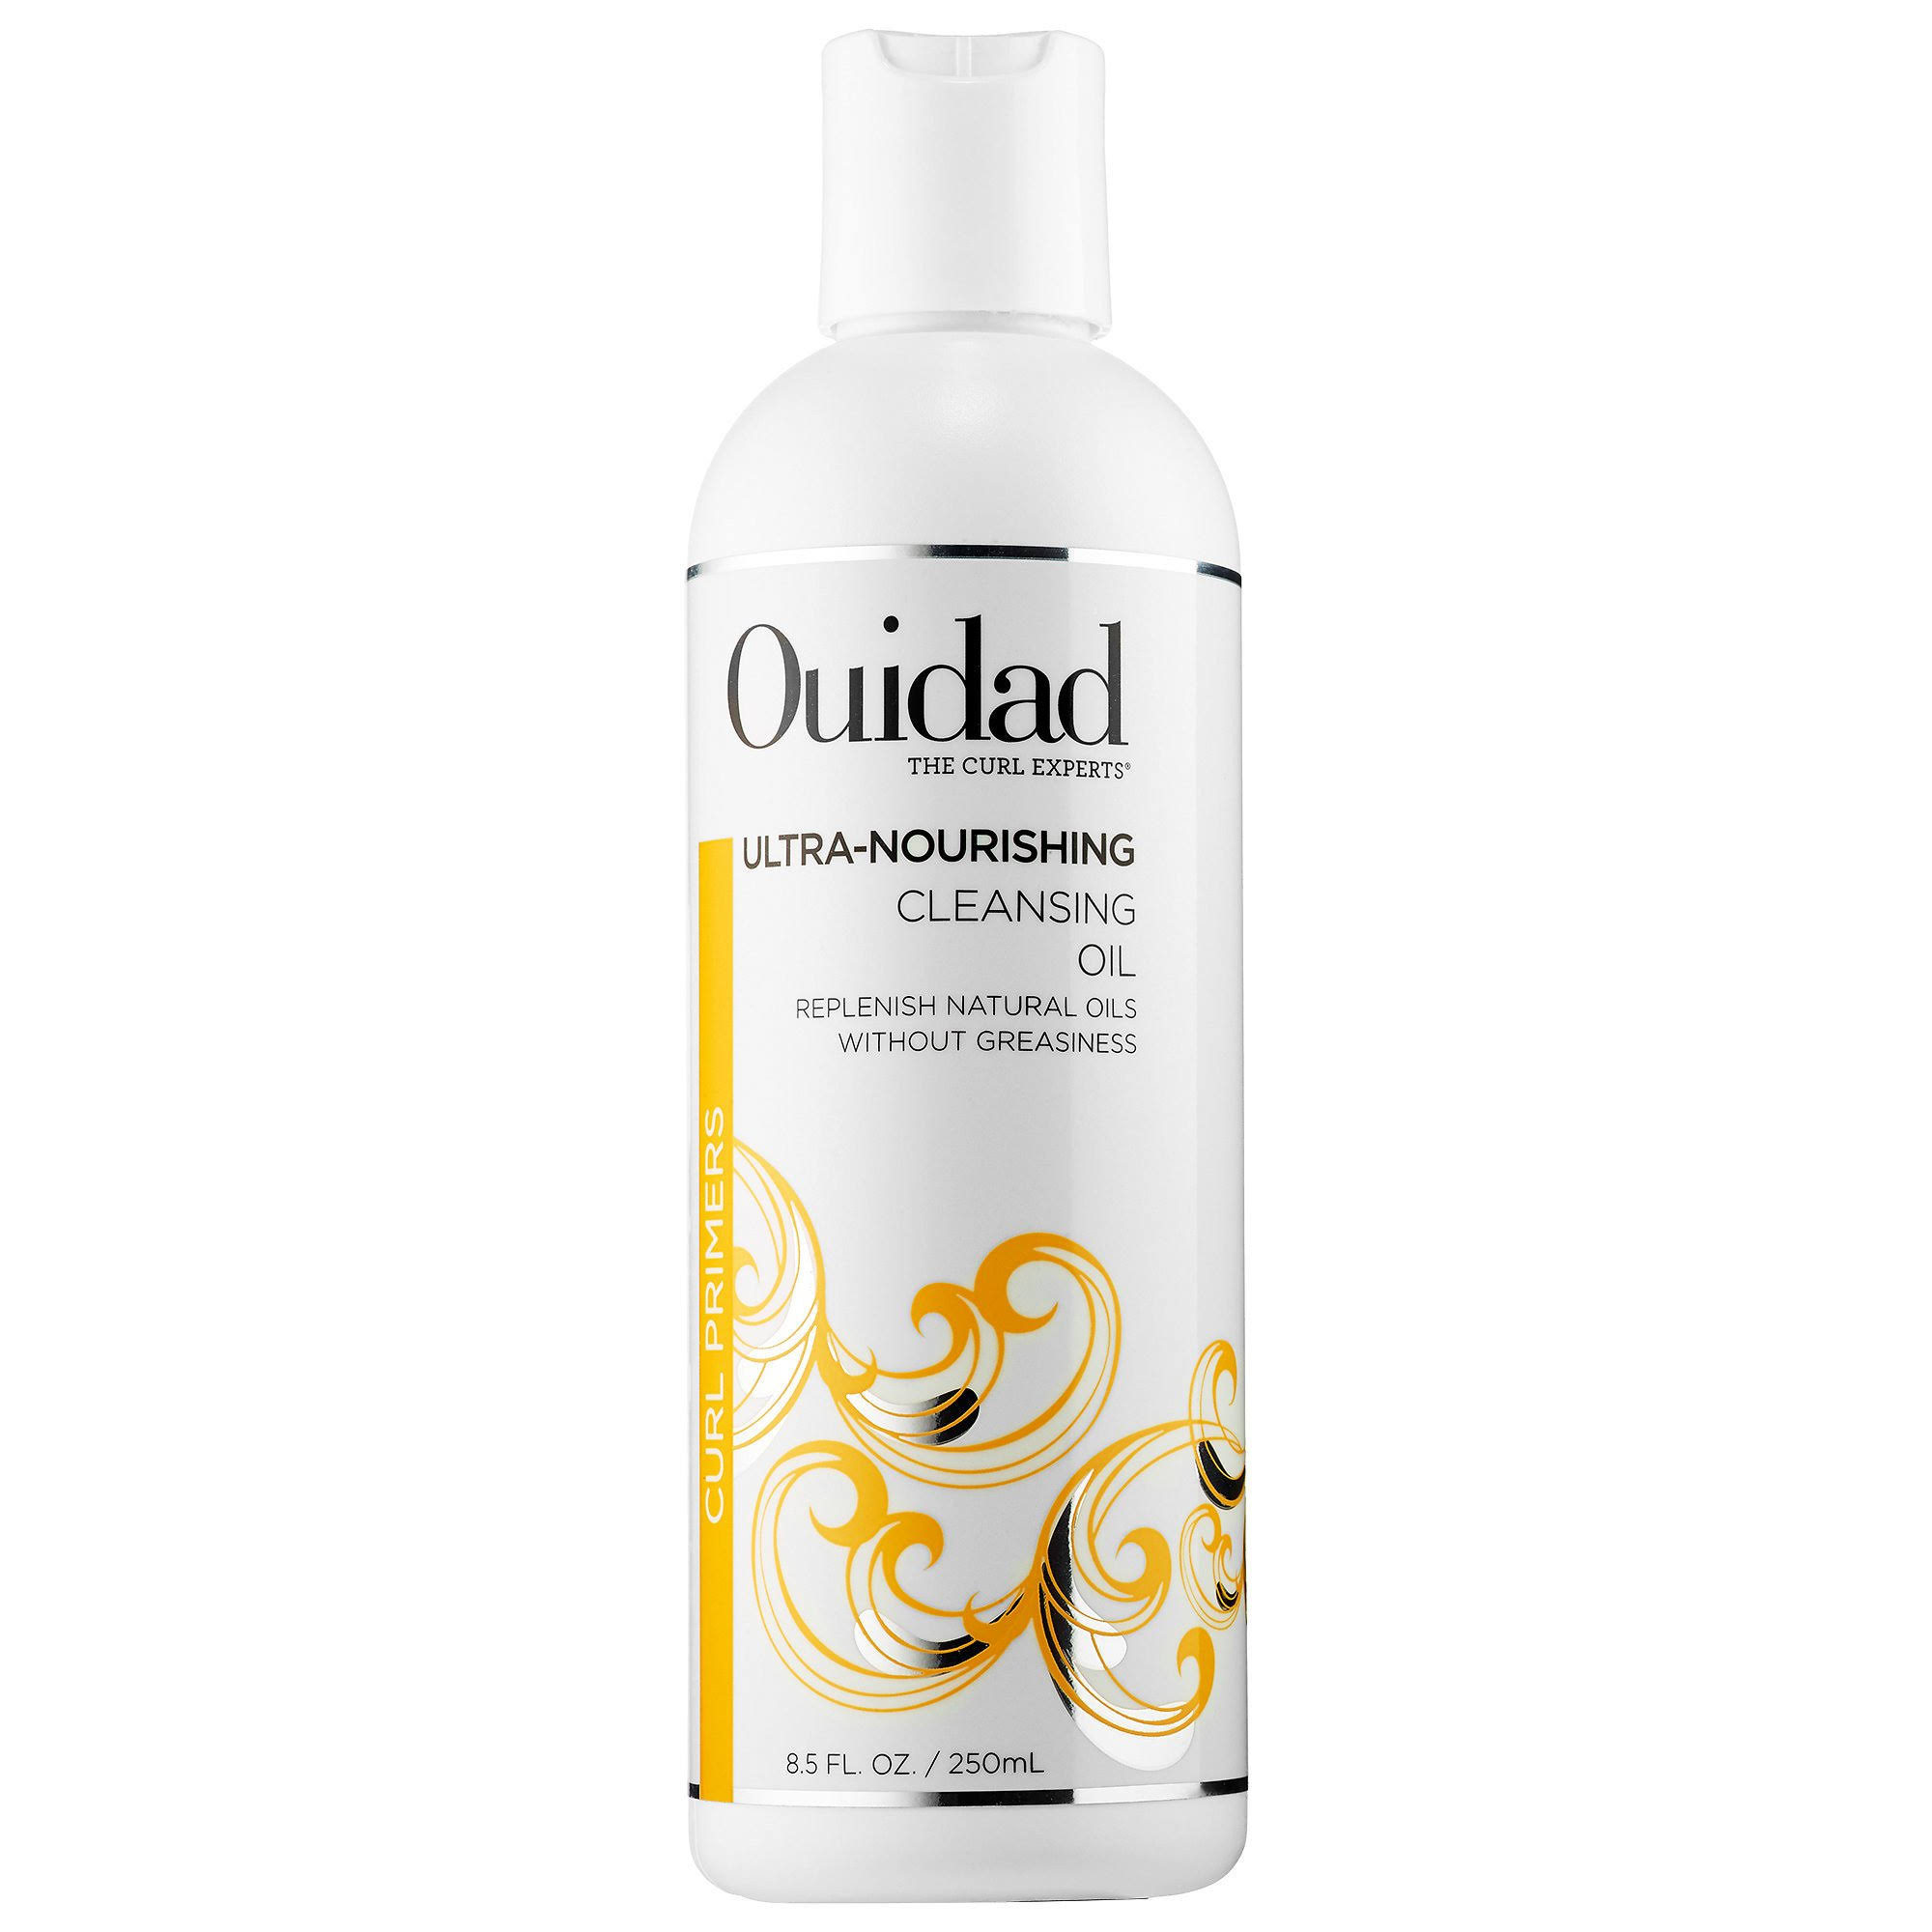 Ouidad Curl Recovery Ultra Nourishing Cleansing Oil - 8.5oz